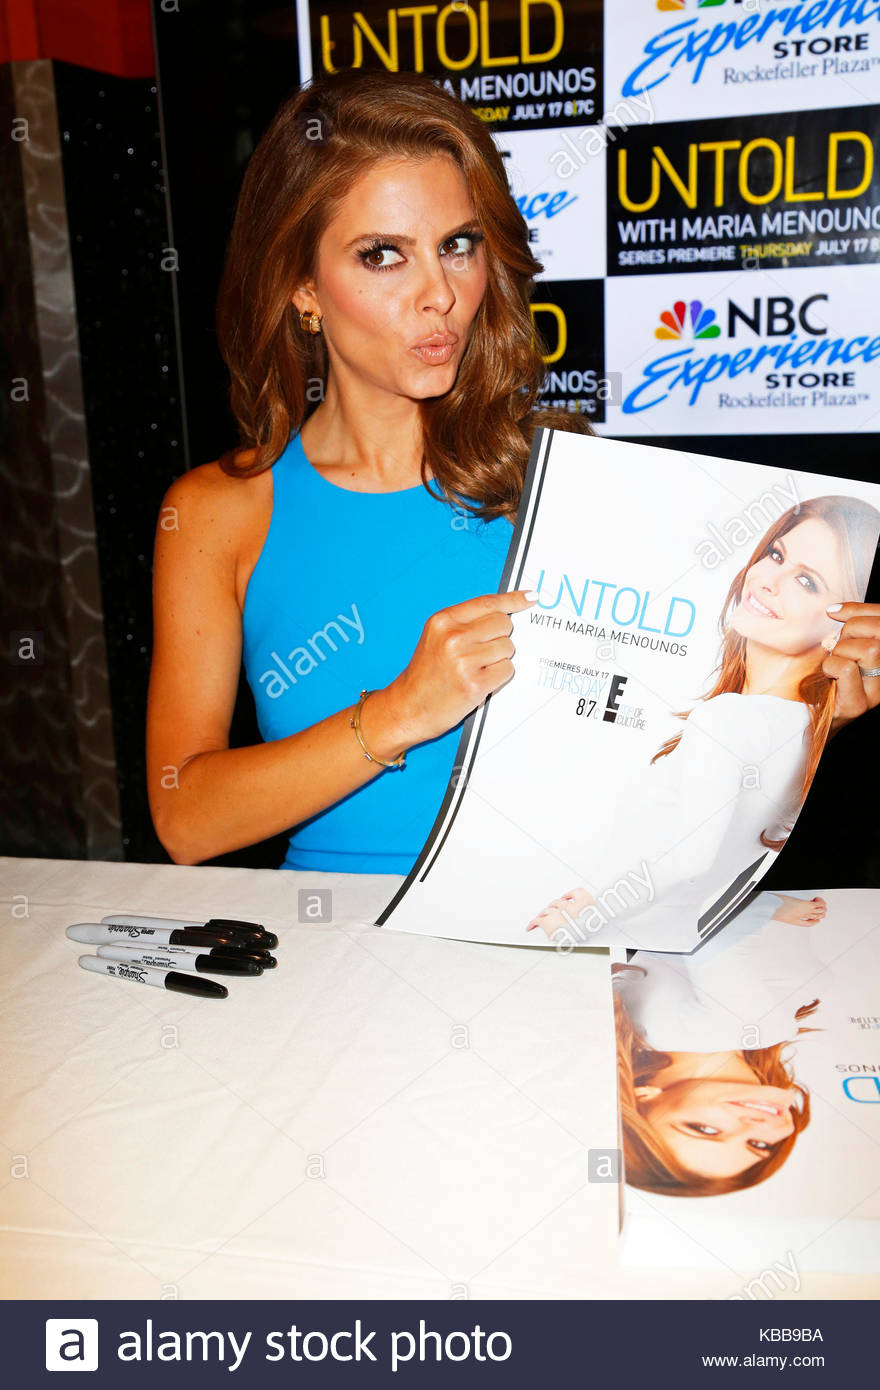 the everygirl s guide to diet and fitness menounos maria